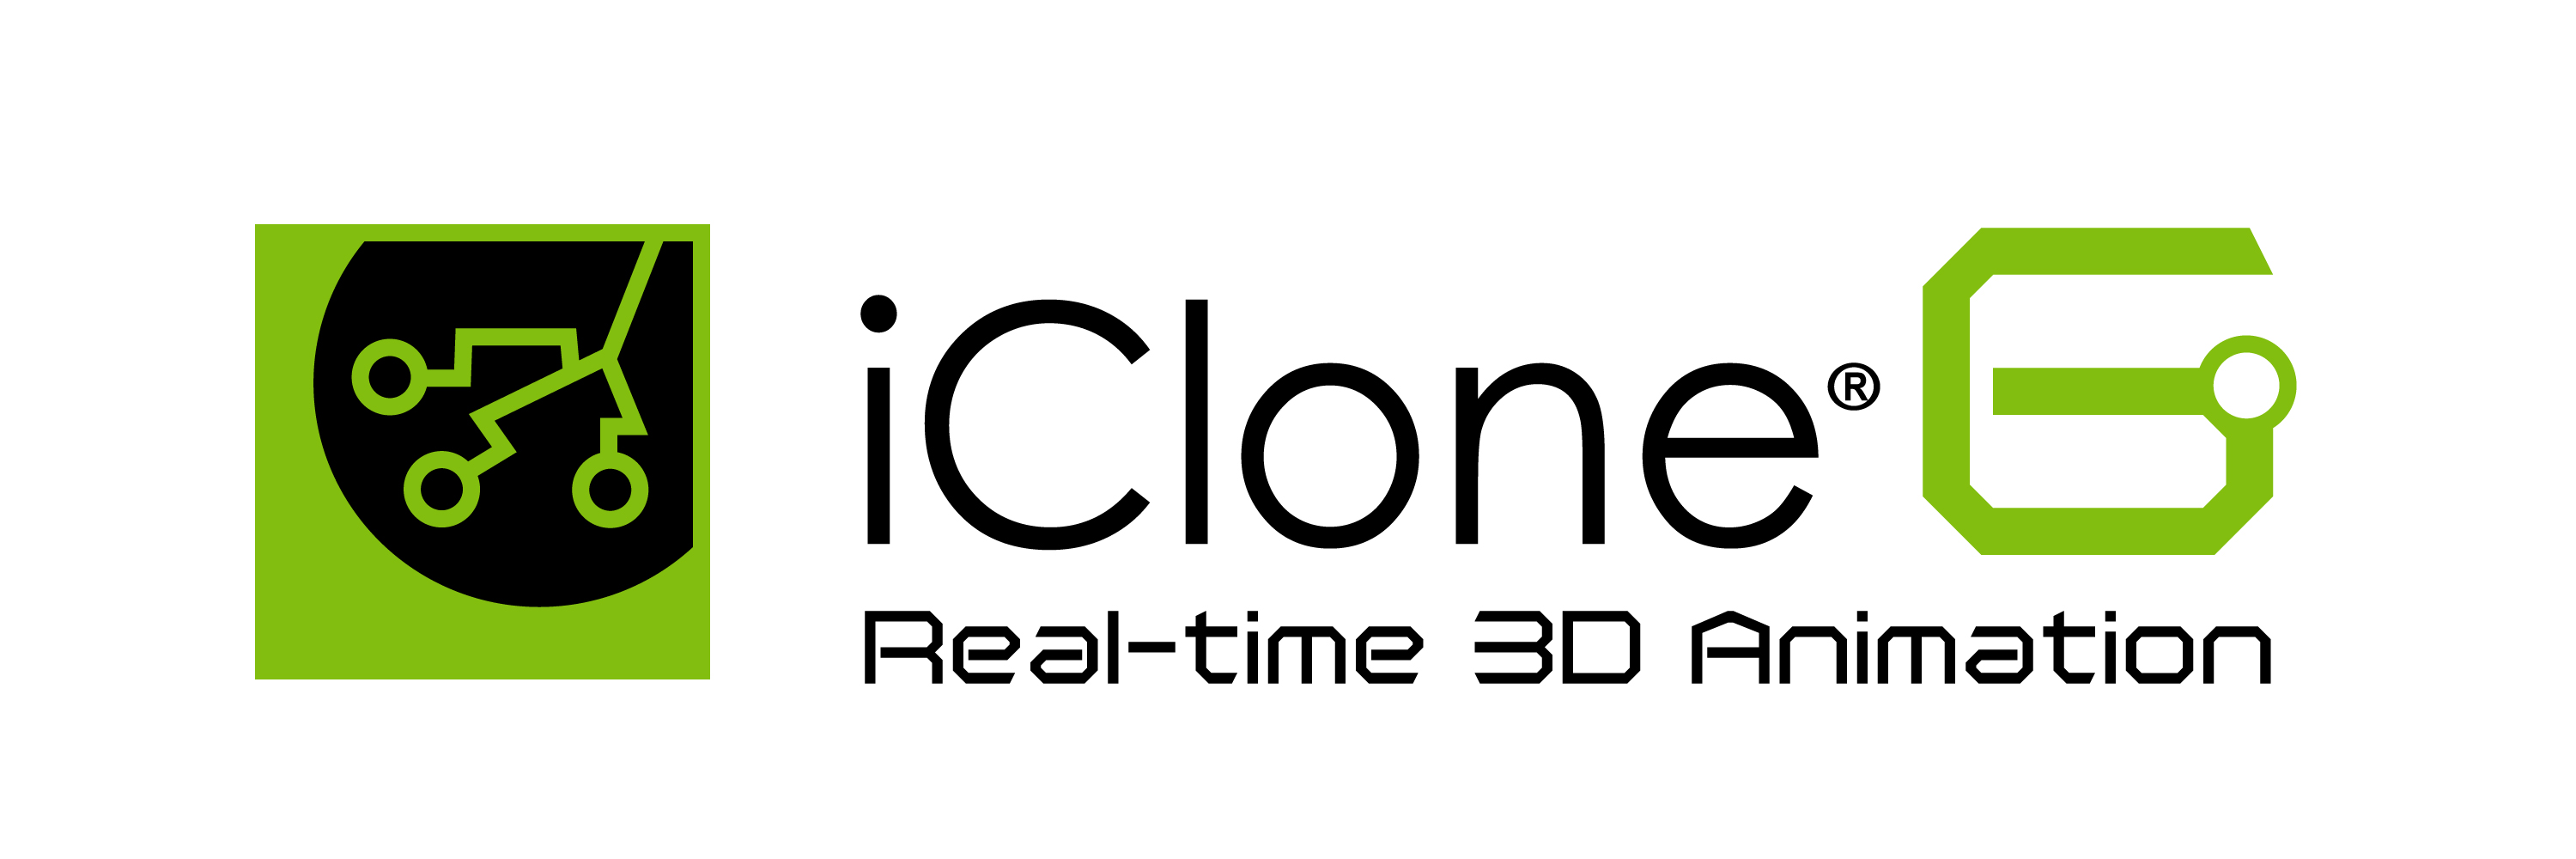 Perception Neuron Announces Launch of Reallusion iClone Perception